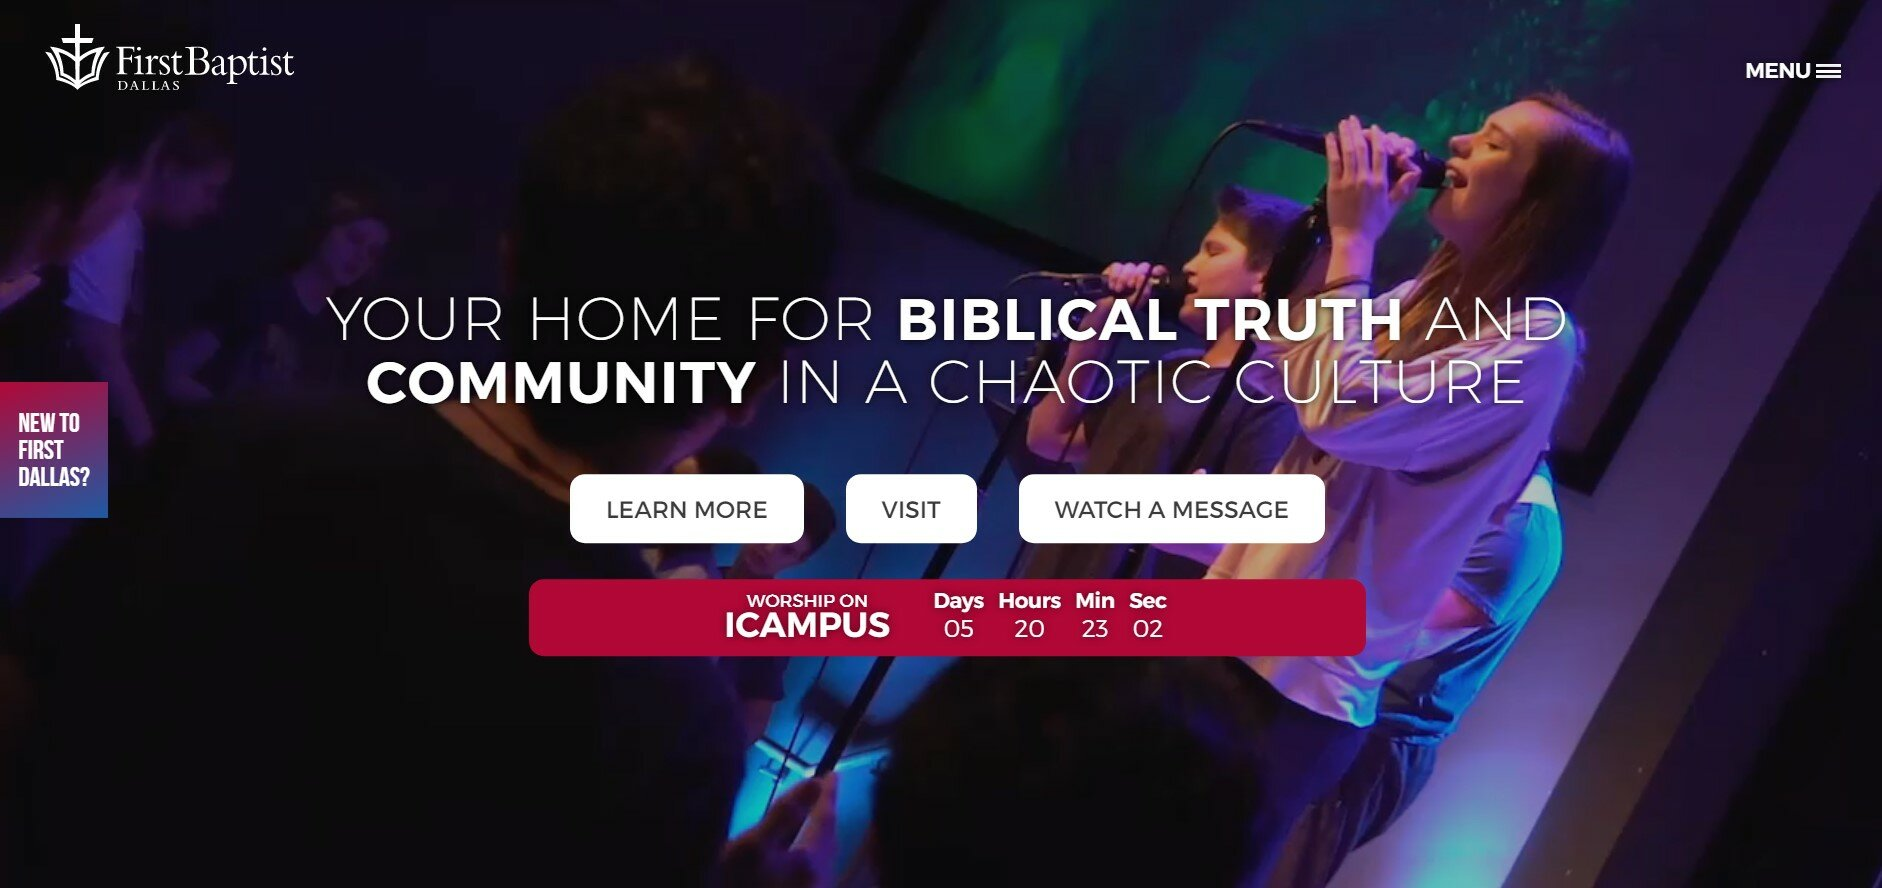 First Baptist Church Dallas has one of our favorite church websites.